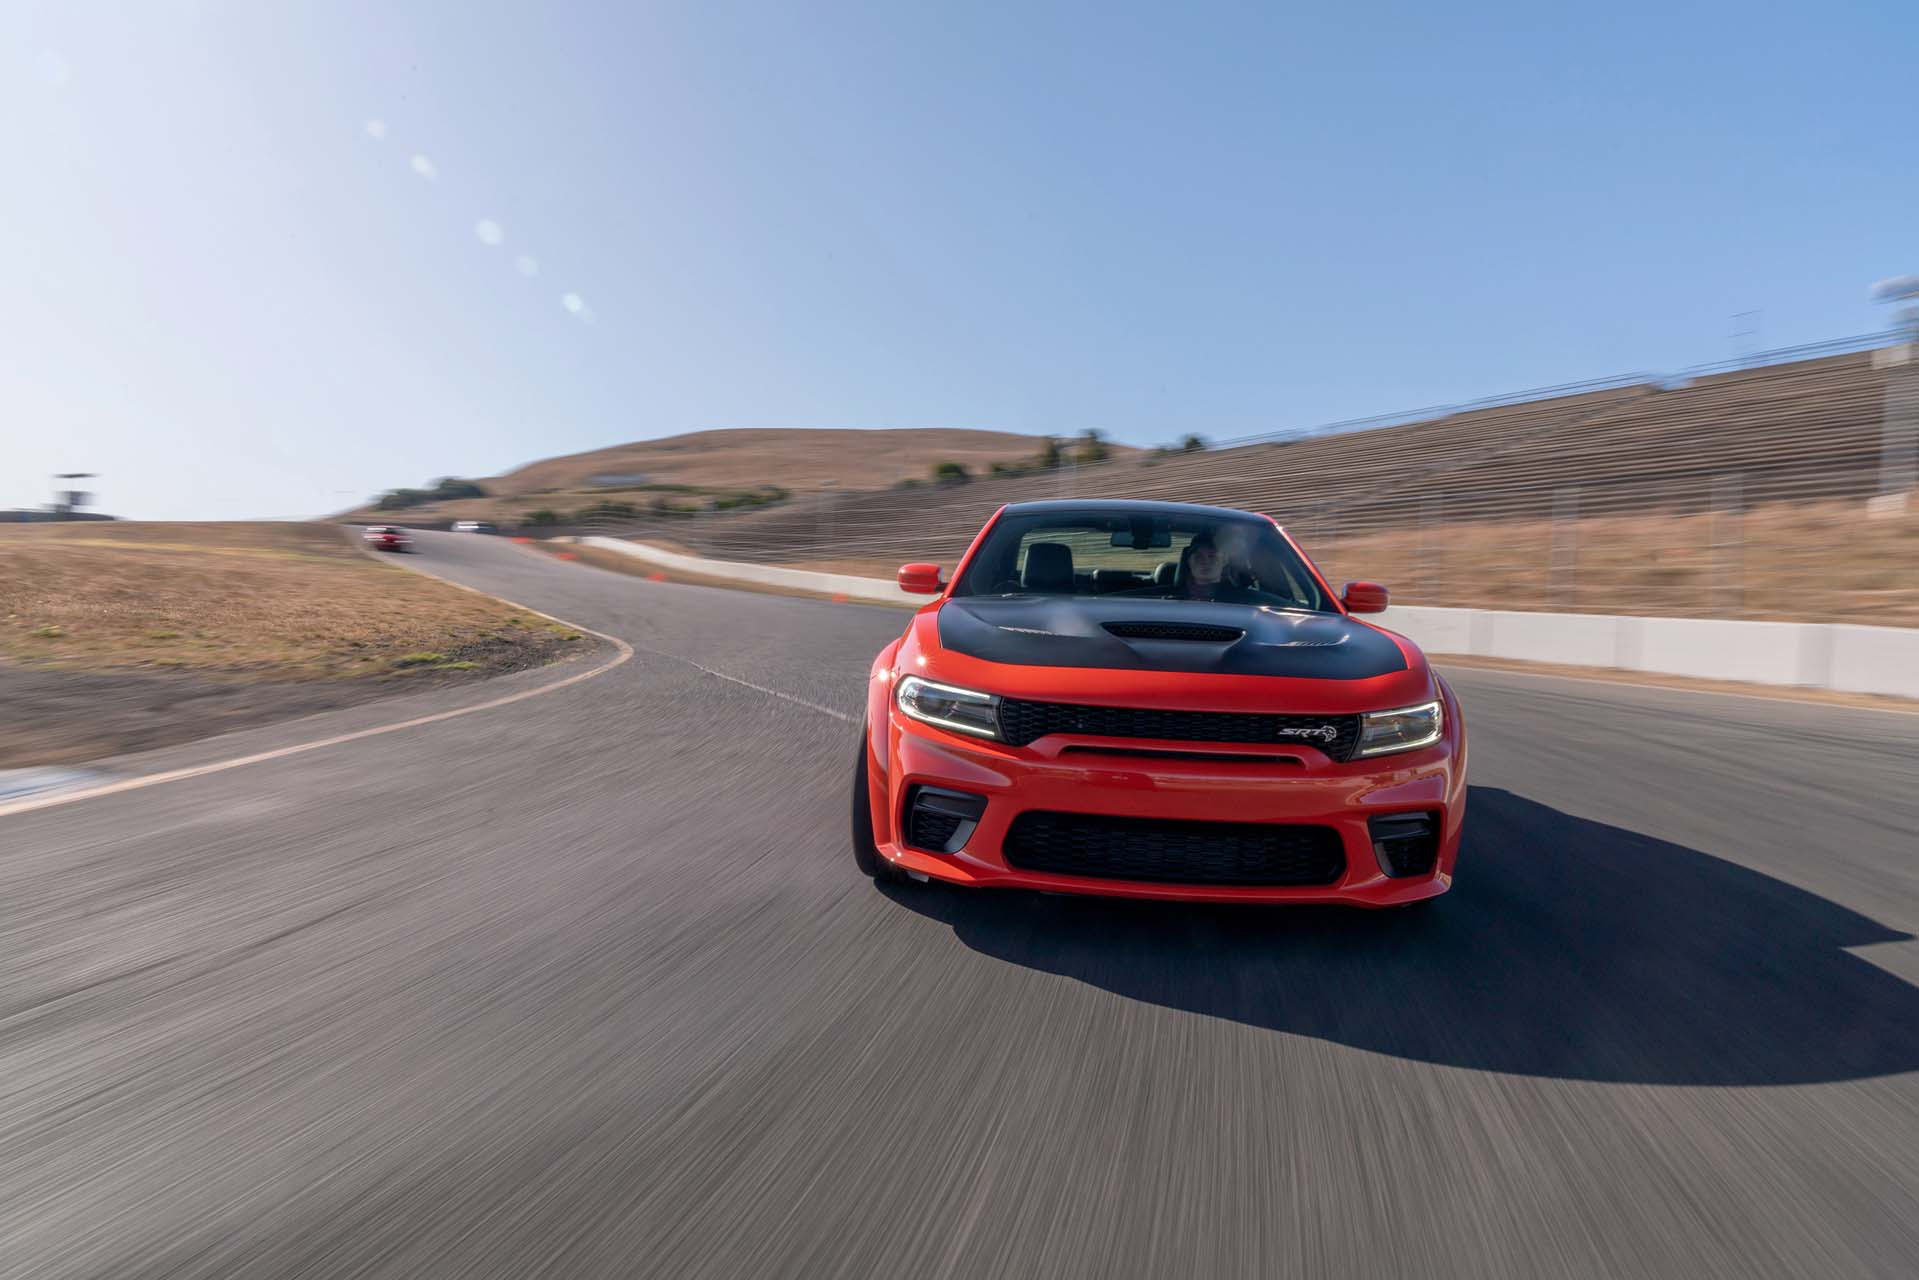 2020 Dodge Charger SRT Hellcat Widebody (Color: TorRed) Front Wallpapers (4)